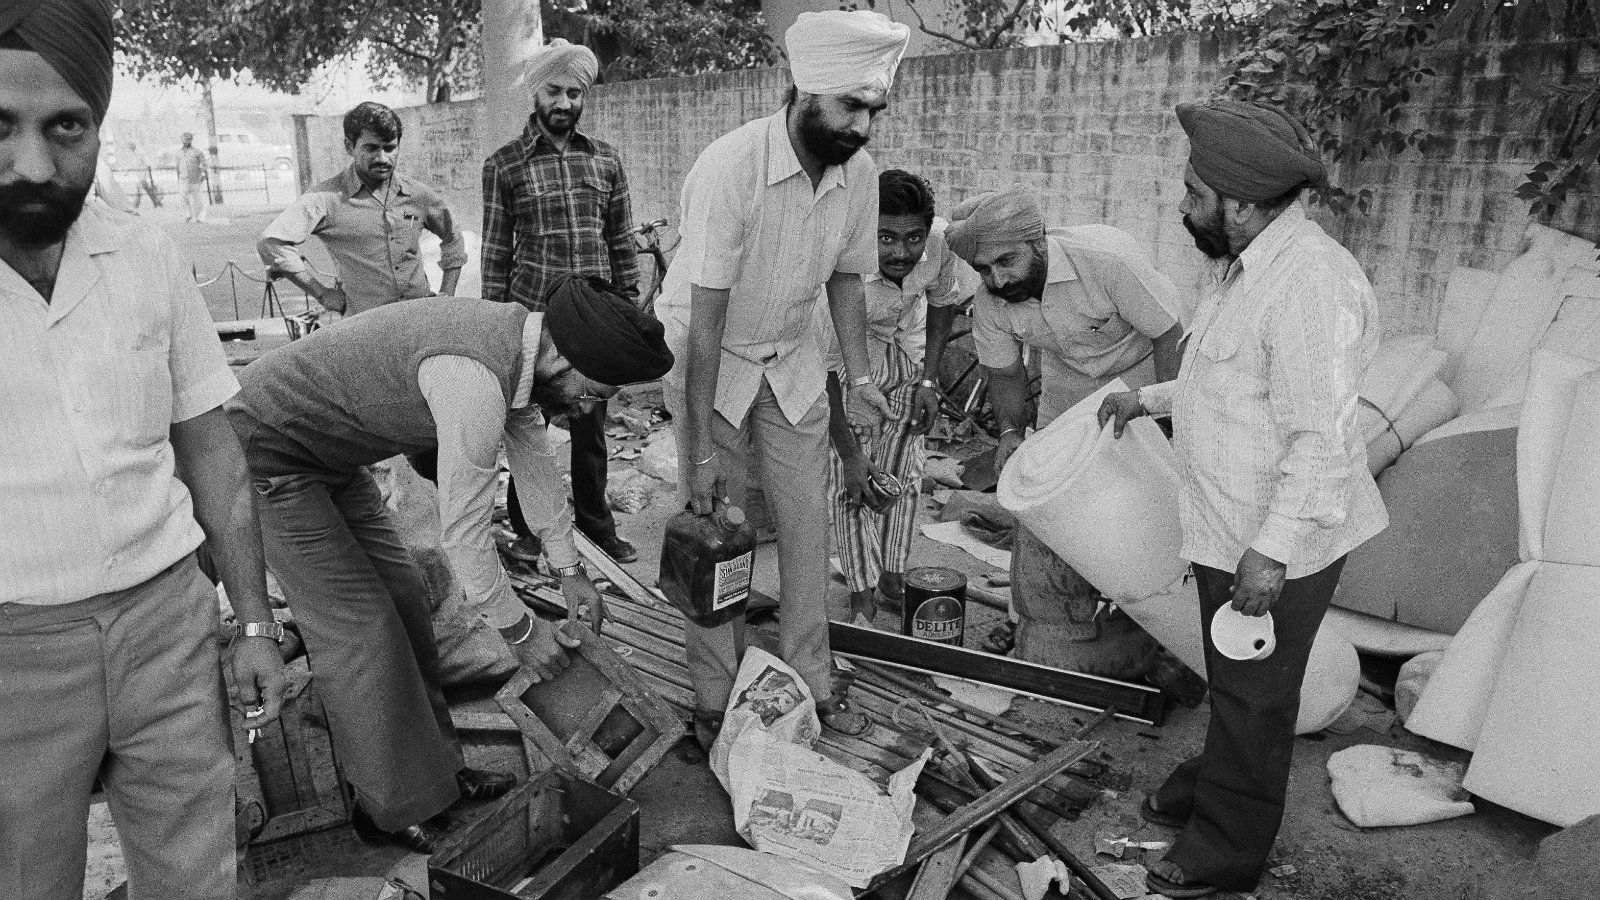 Members of the Indian Sikh community, whose house were attacked, burned and looted the past days by mobs of Hindus are seen as they collect their looted property in a Delhi police station, Nov. 6, 1984. Life is returning to normal after heavy riots that followed the assassination of Prime Minister Indira Gandhi.